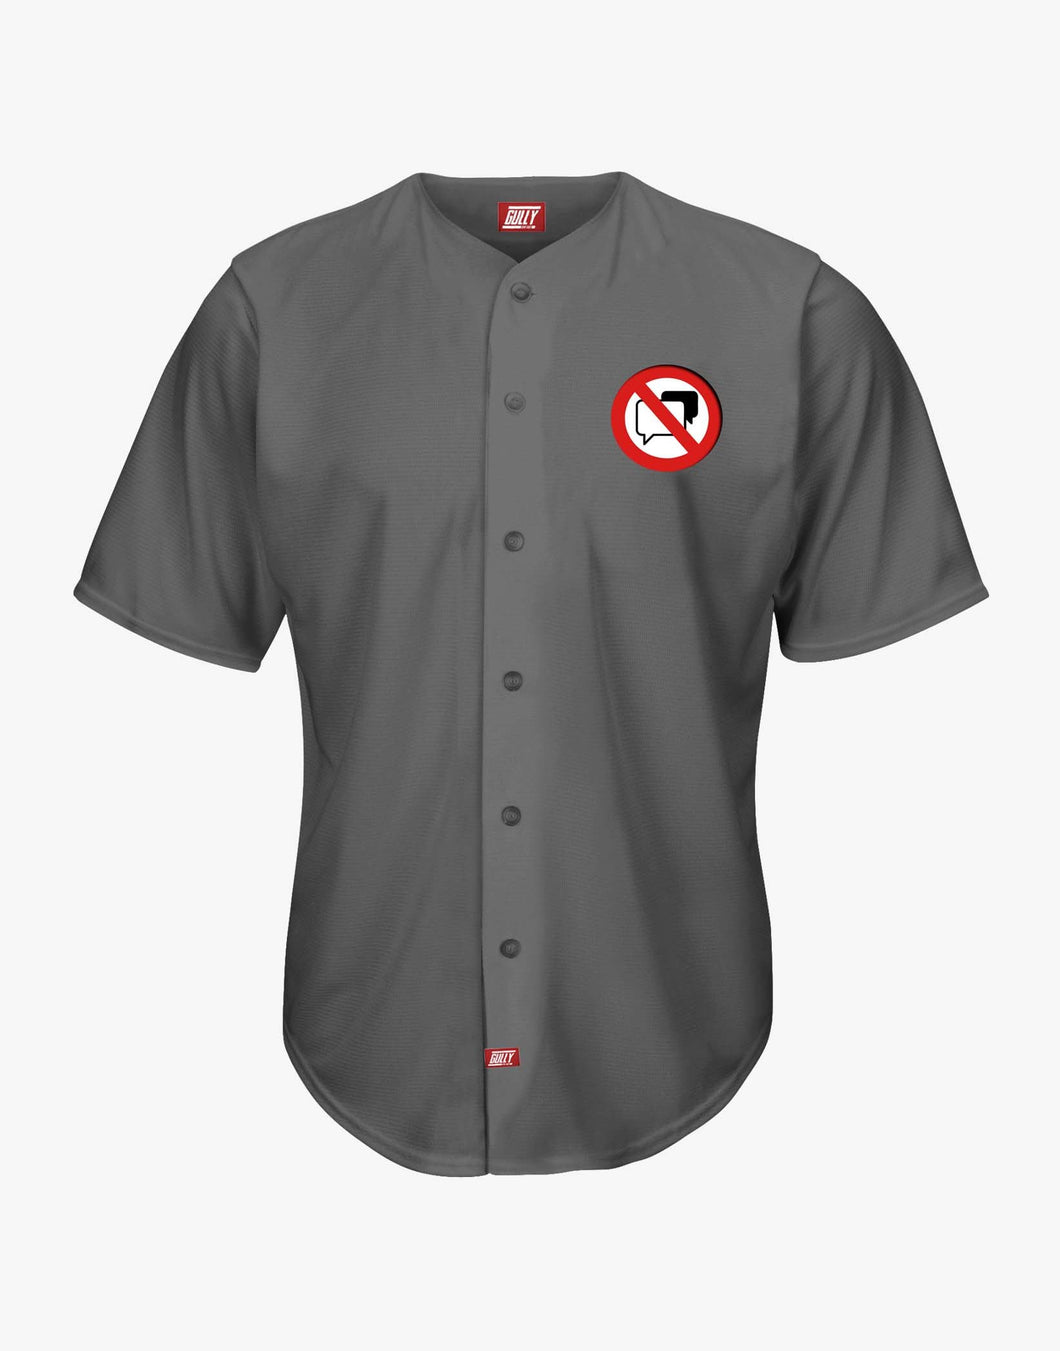 No Speaking Baseball Shirt (Grey)